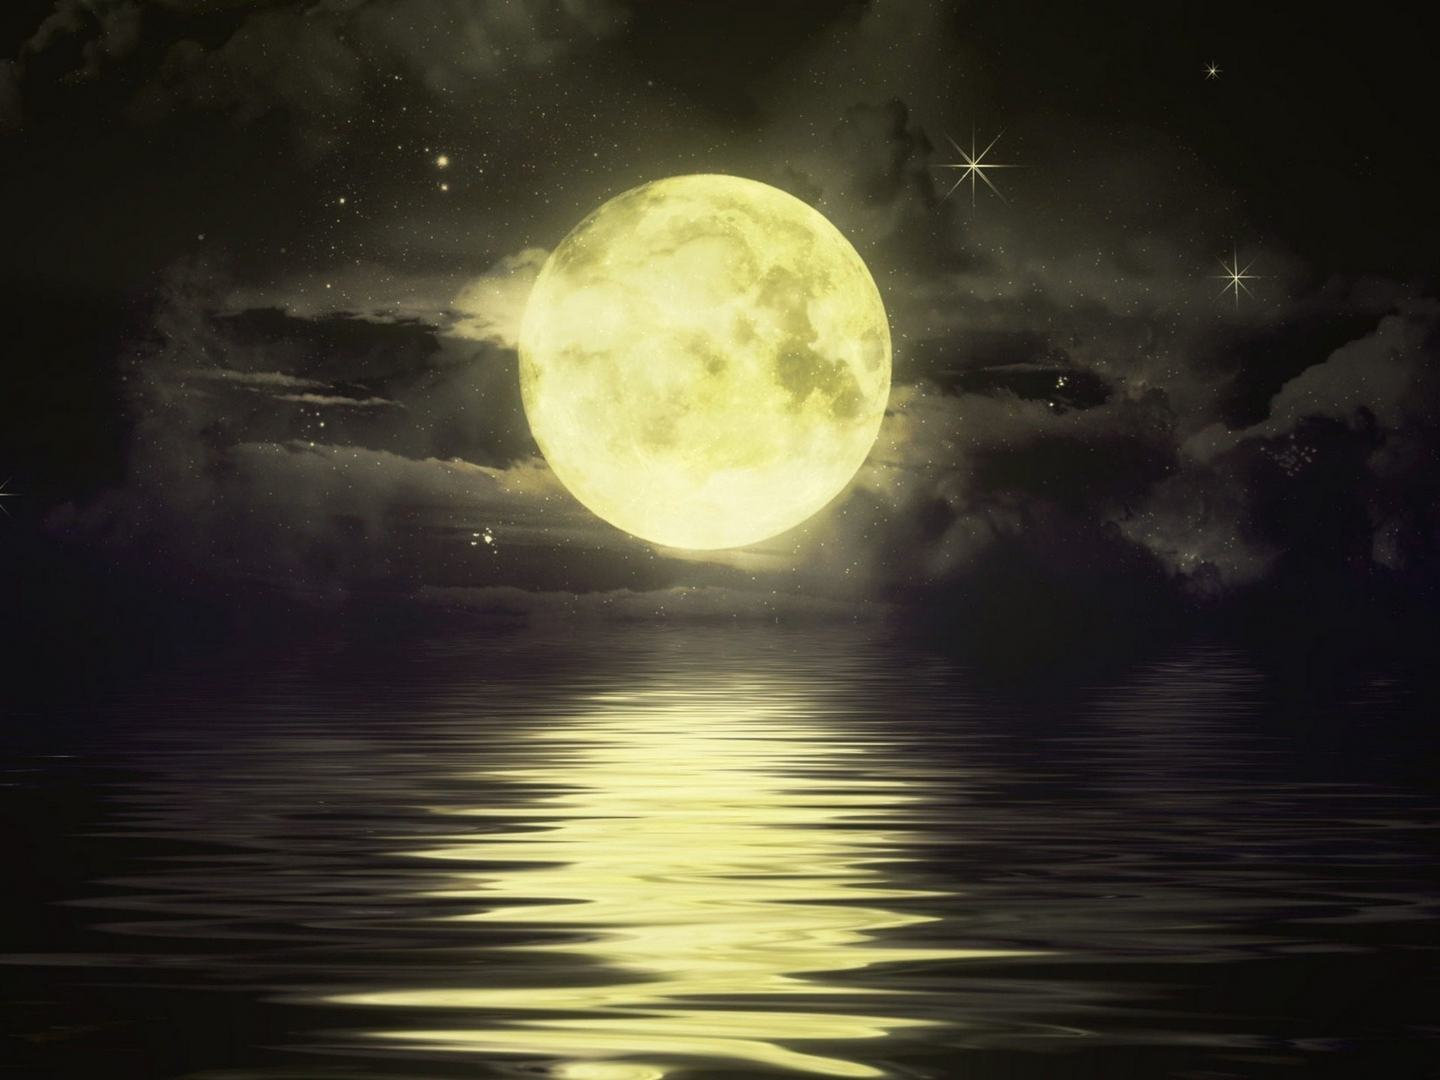 anime full moon wallpaper - wallpapersafari